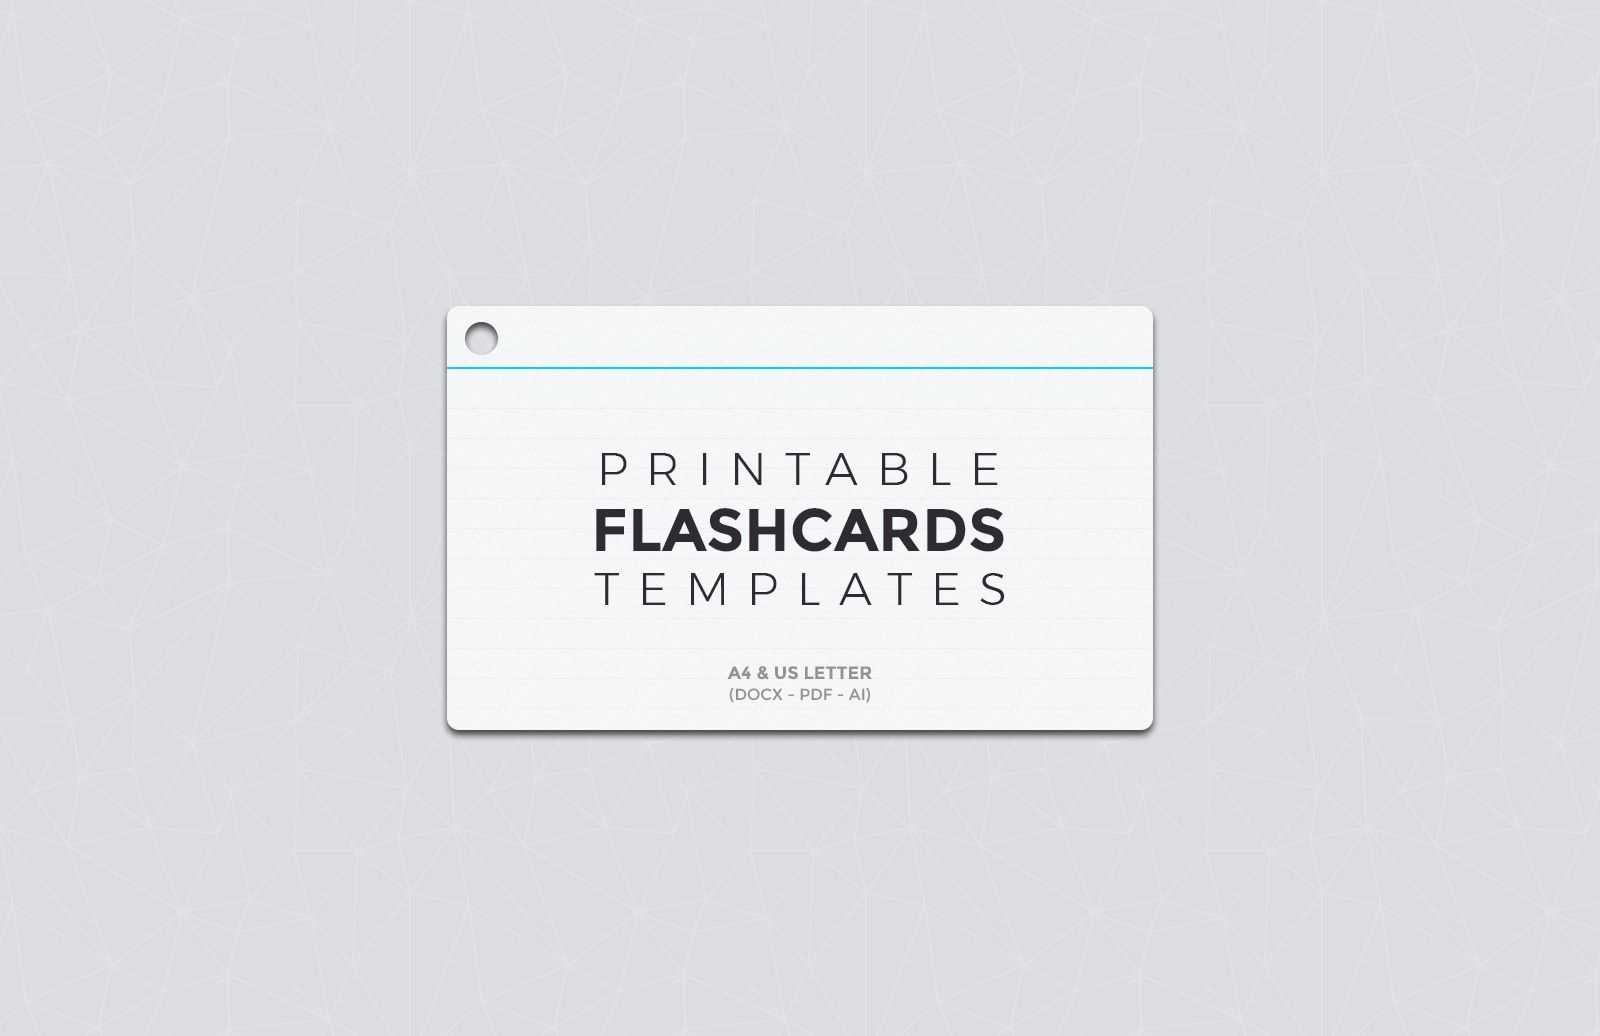 005 Printable Flash Card Template Top Ideas Word Alphabet For Free Printable Flash Cards Template